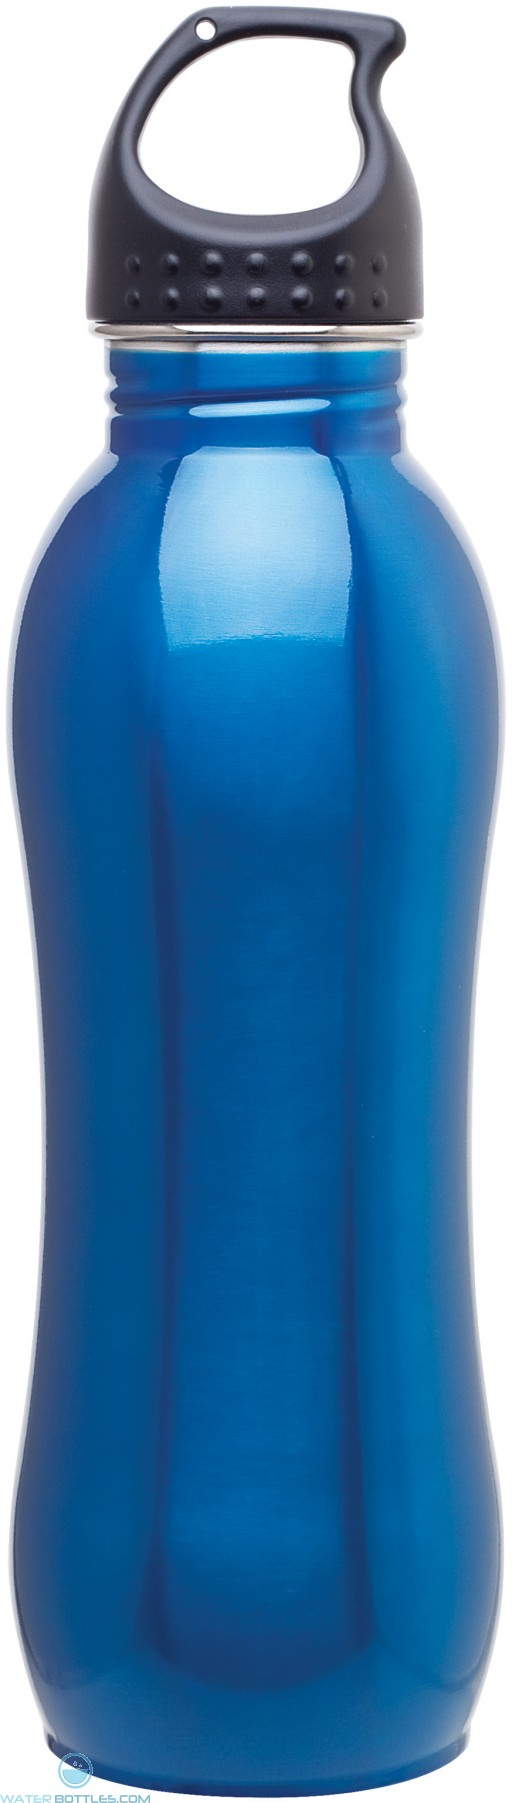 H2Go Stainless Steel Balance | 24 oz - Electric Blue